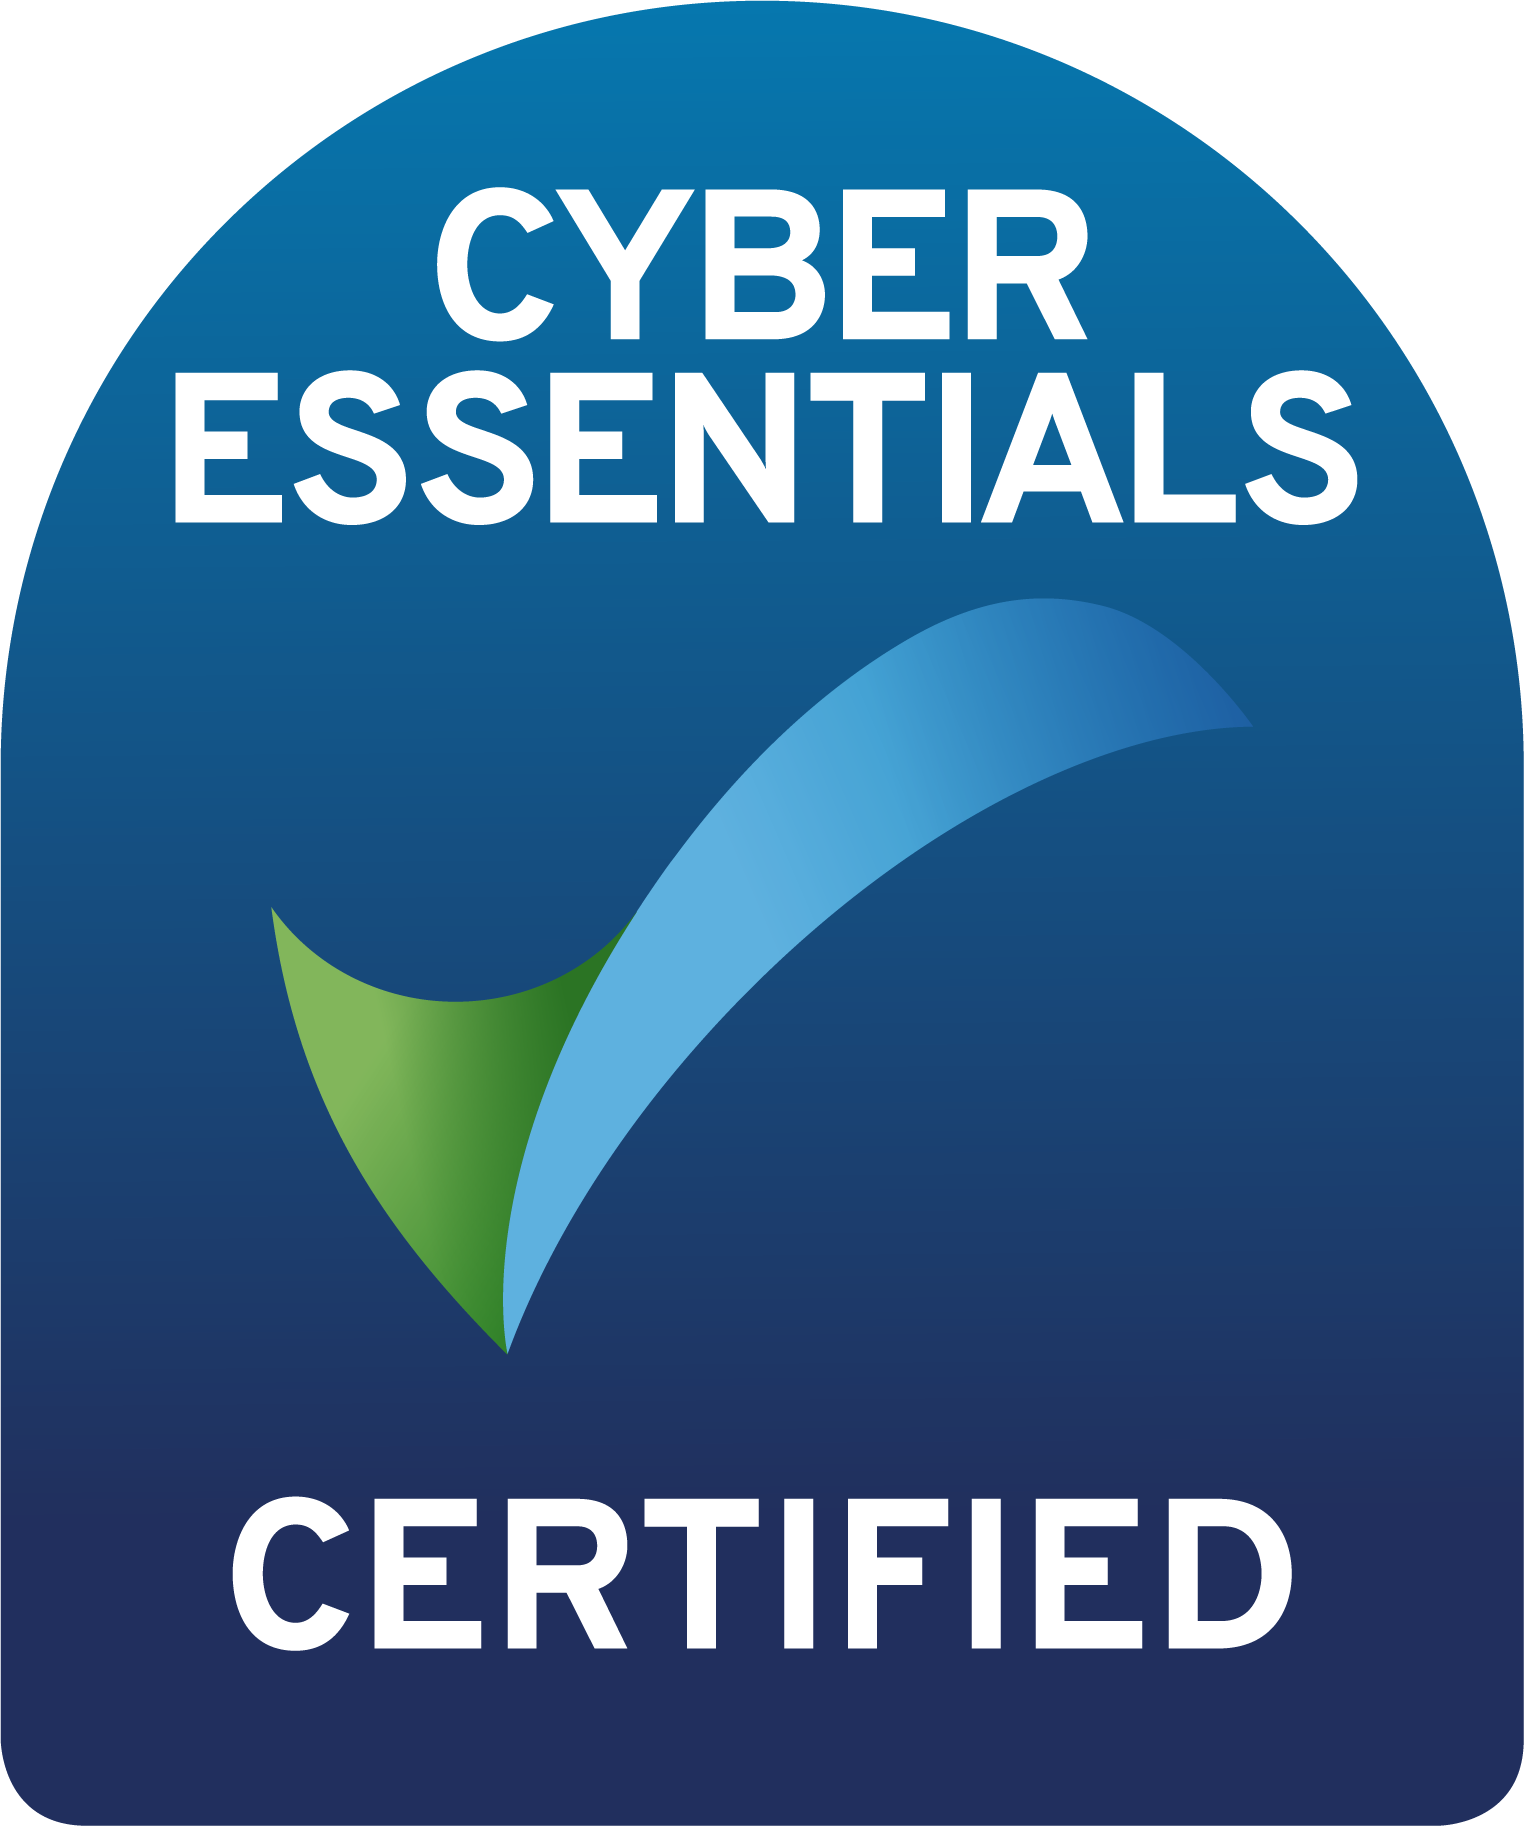 Shows a Cyber Essentials Certified Badge